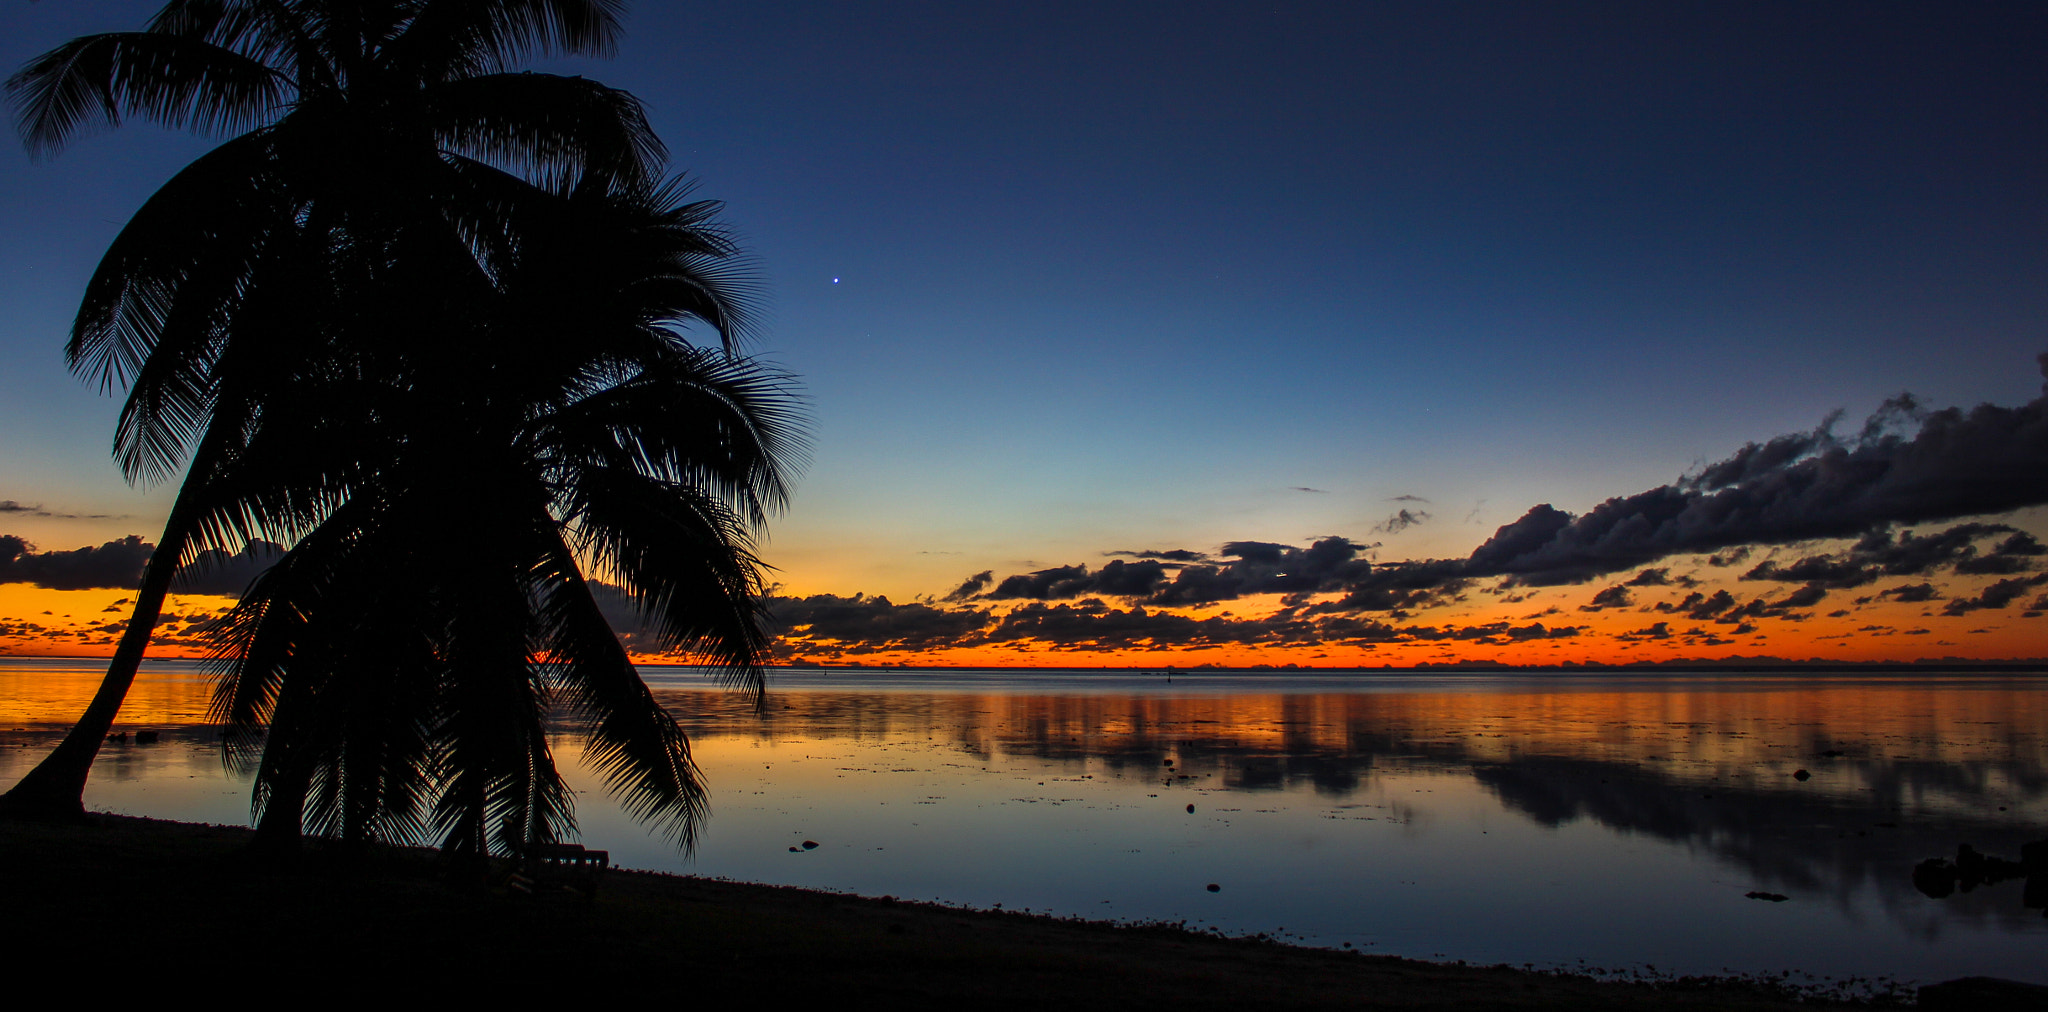 Photograph Sunset Moorea Alternate by Will Araujo on 500px